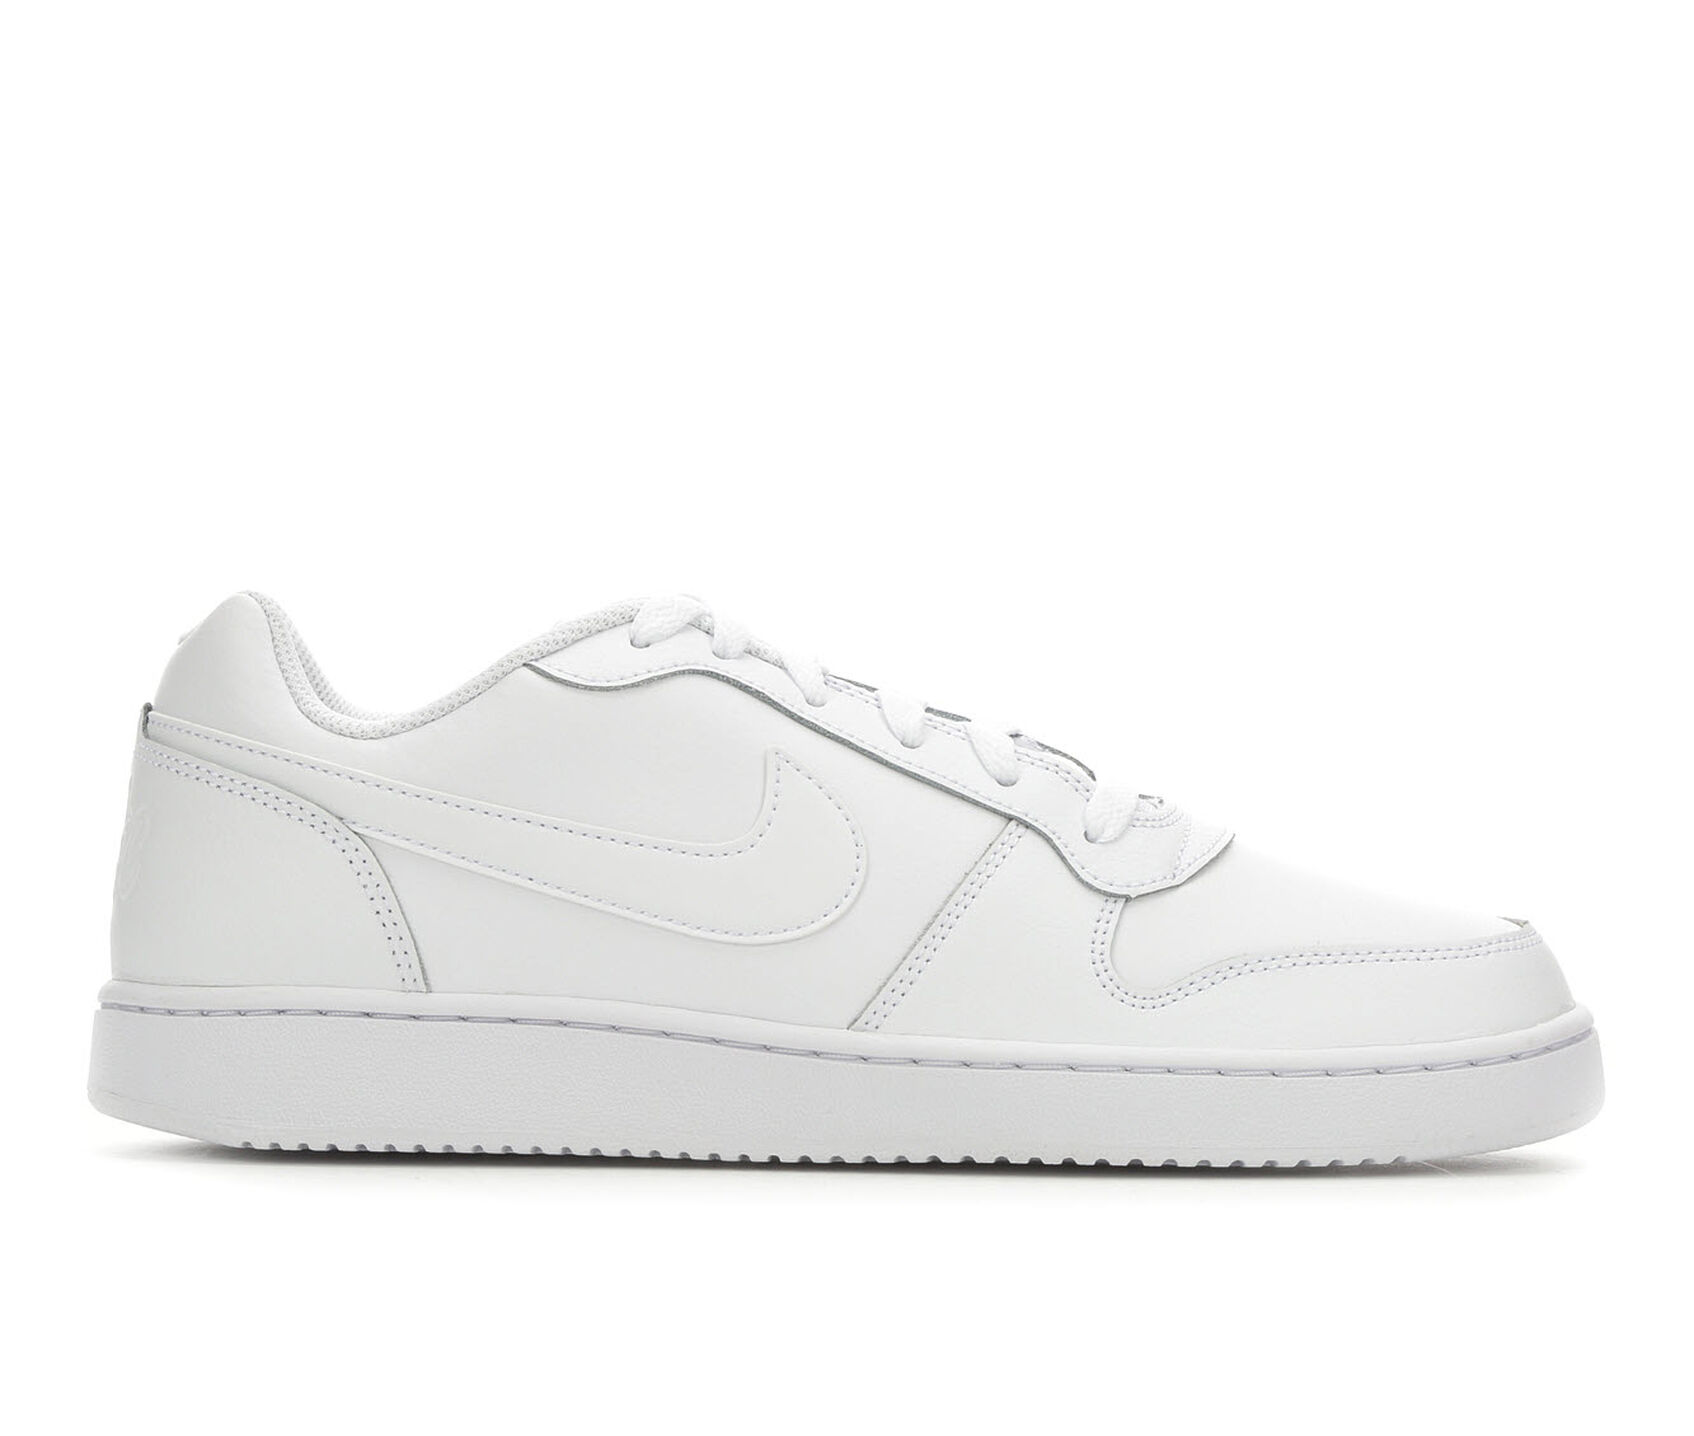 timeless design 9c483 40ed7 ... Nike Ebernon Low Sneakers. Previous